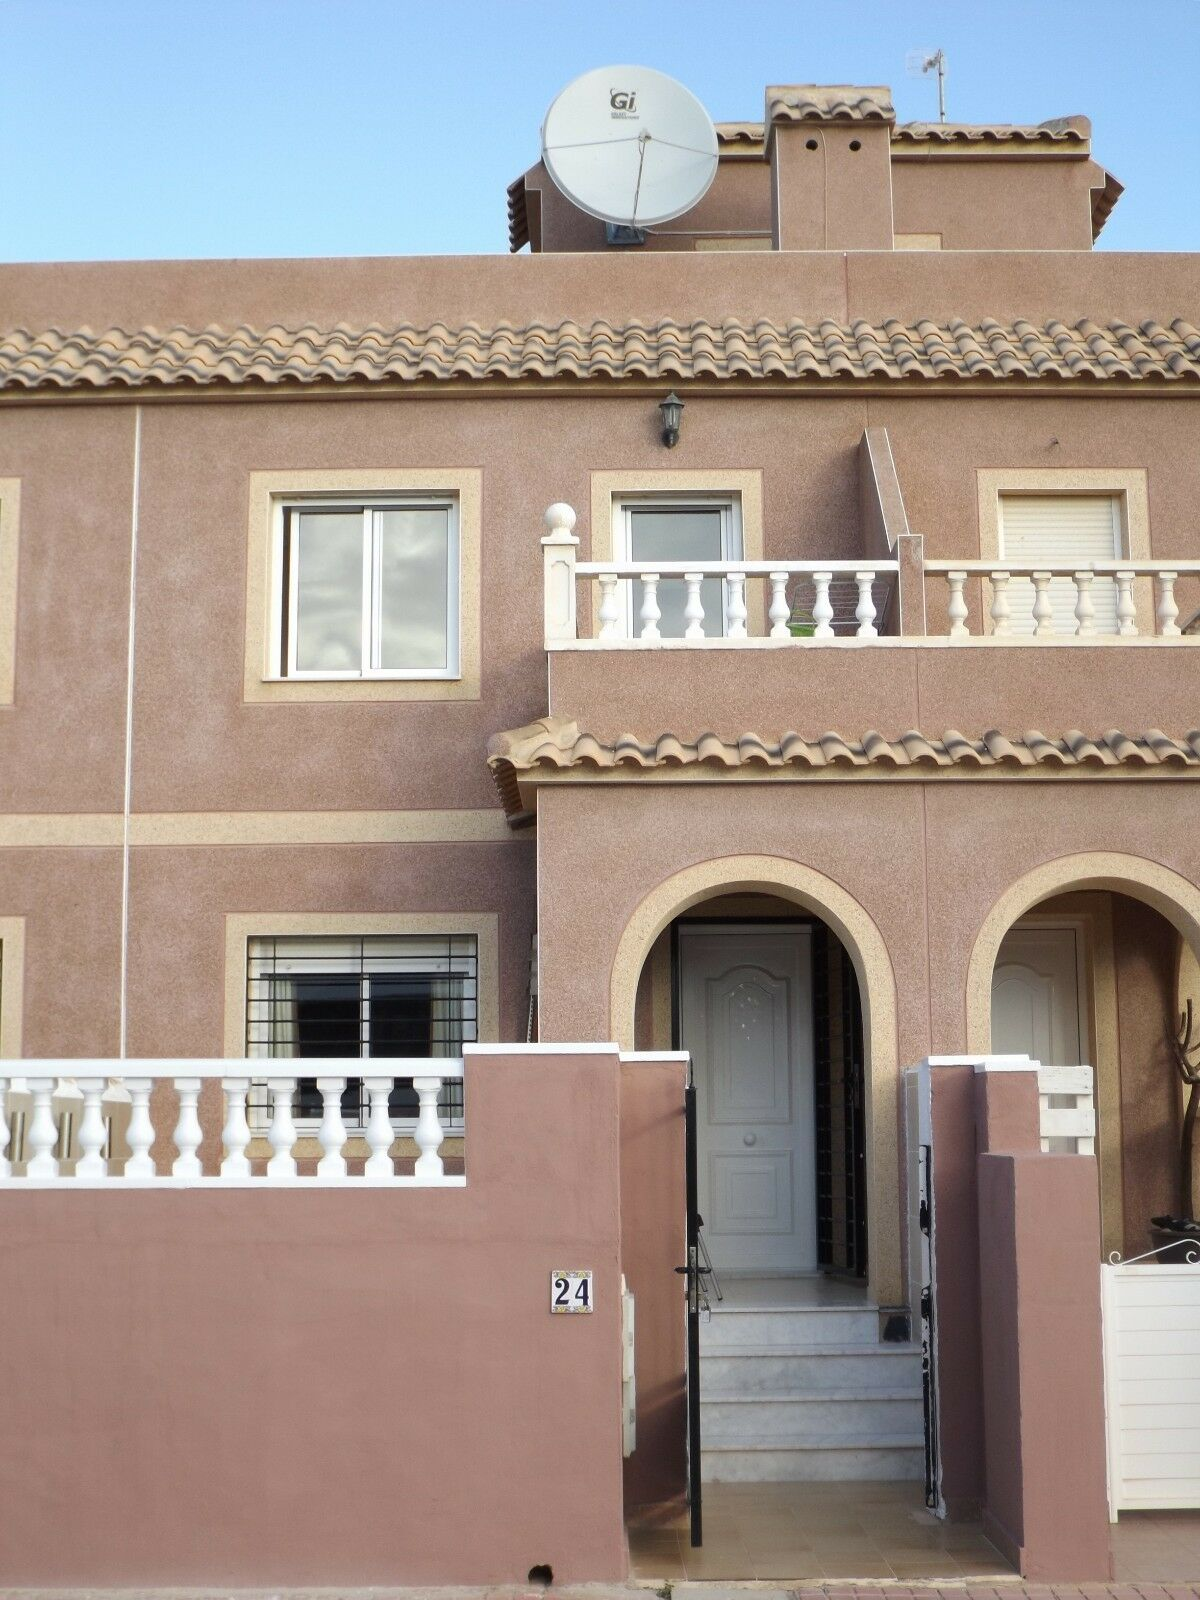 2 bedroom townhouse with bathroom shower room lounge for 2 bedroom townhouse